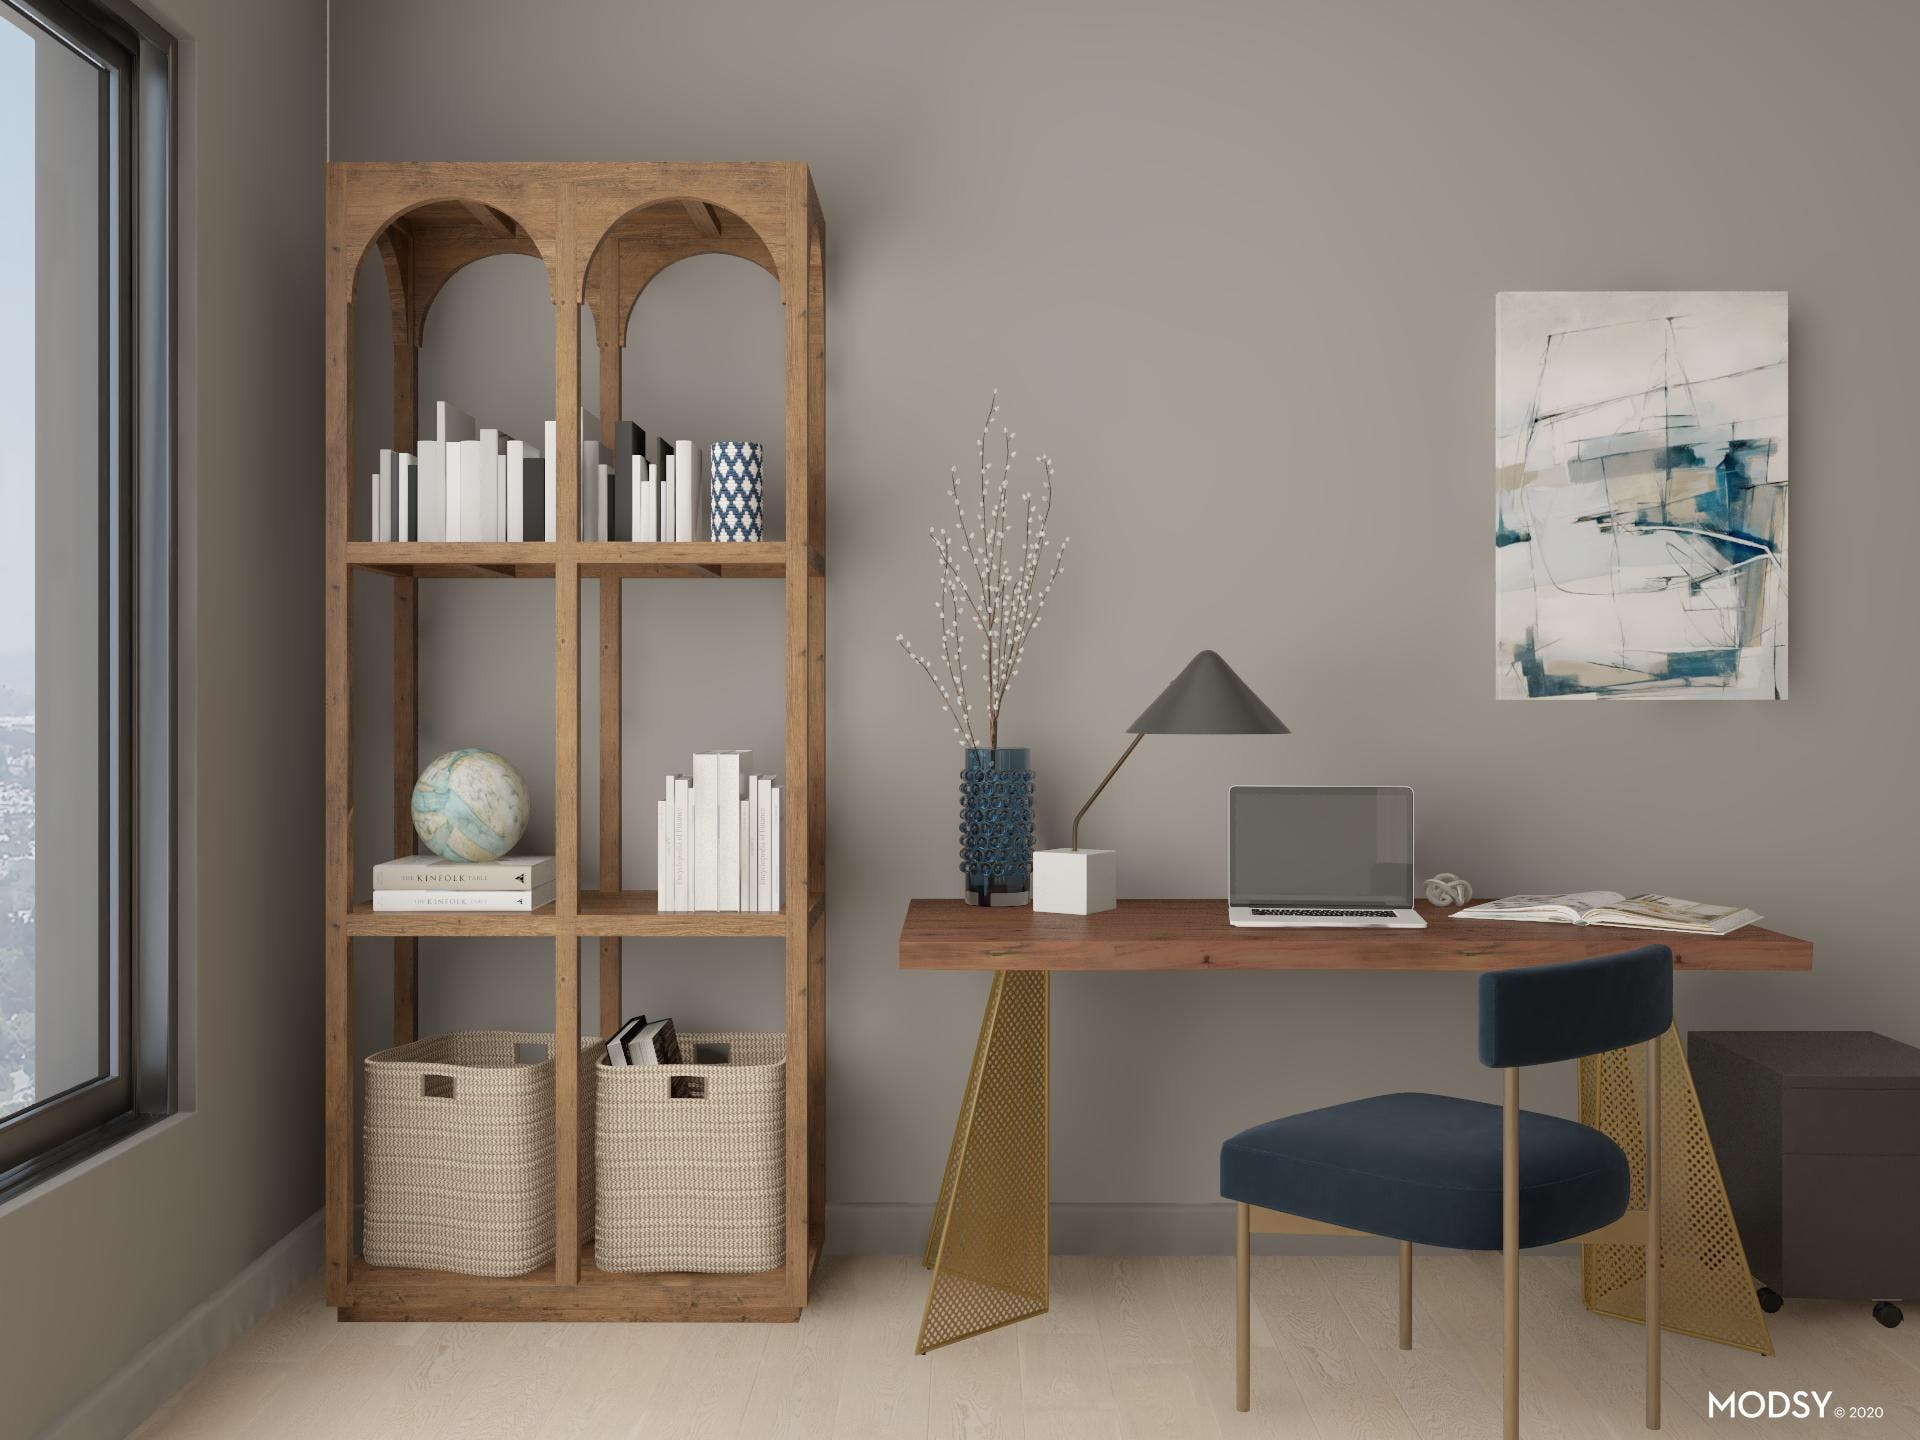 Find Home Office Design Ideas At Modsy